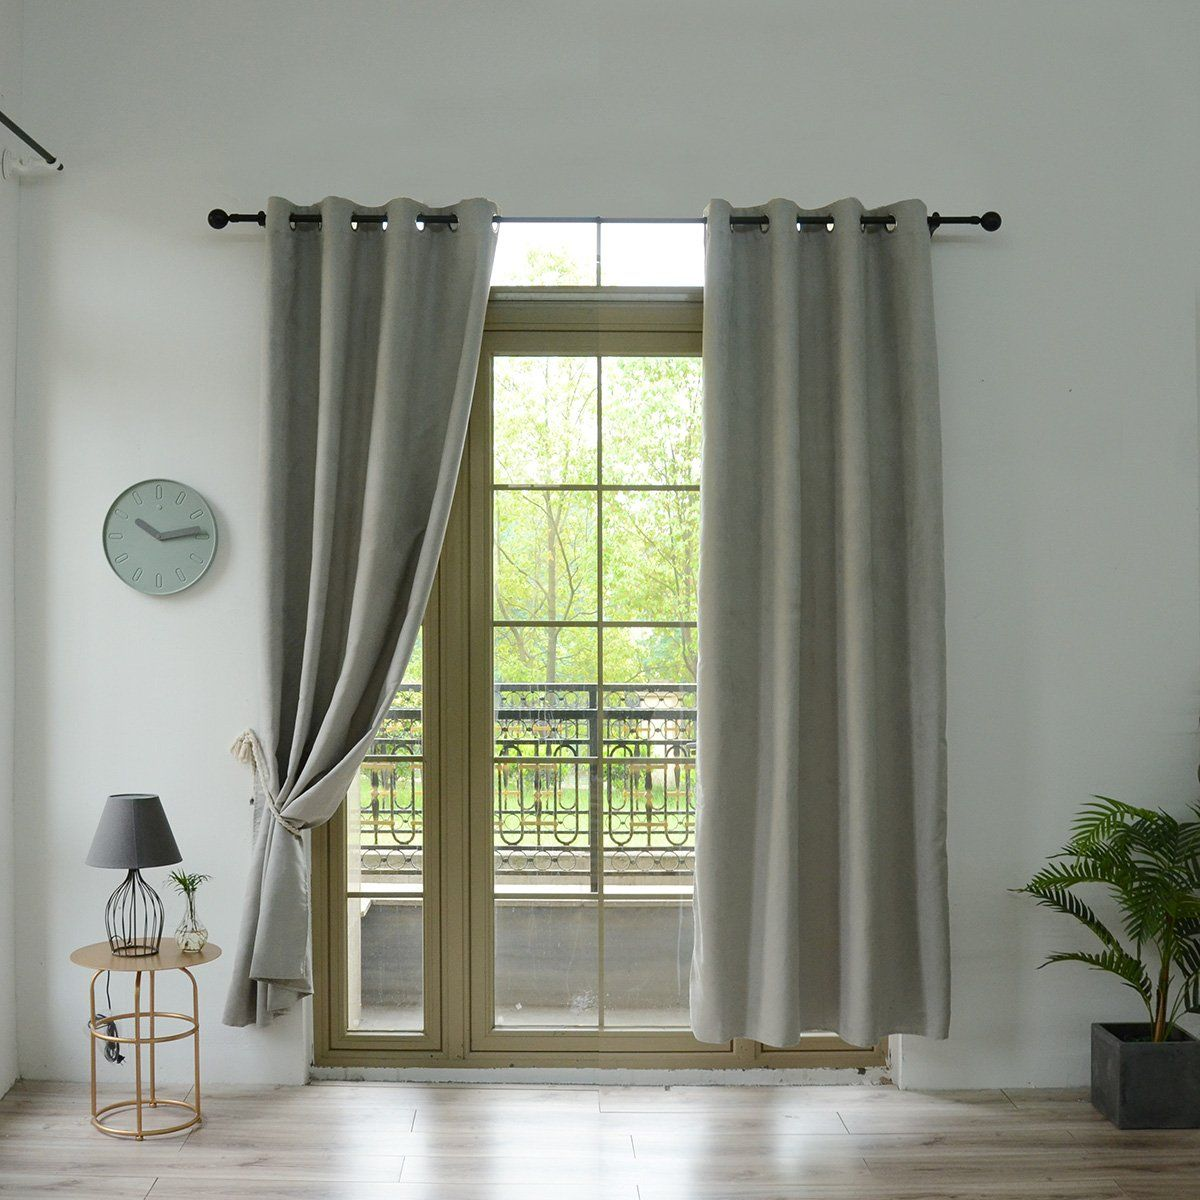 Wellyoung Suede Thermaback Blackout Curtain Panelpaisley Grommet Curtain Set 52 Wide Grey2 Panels 52 W 63 L Grommet Curtains Blackout Curtains Curtain Sets